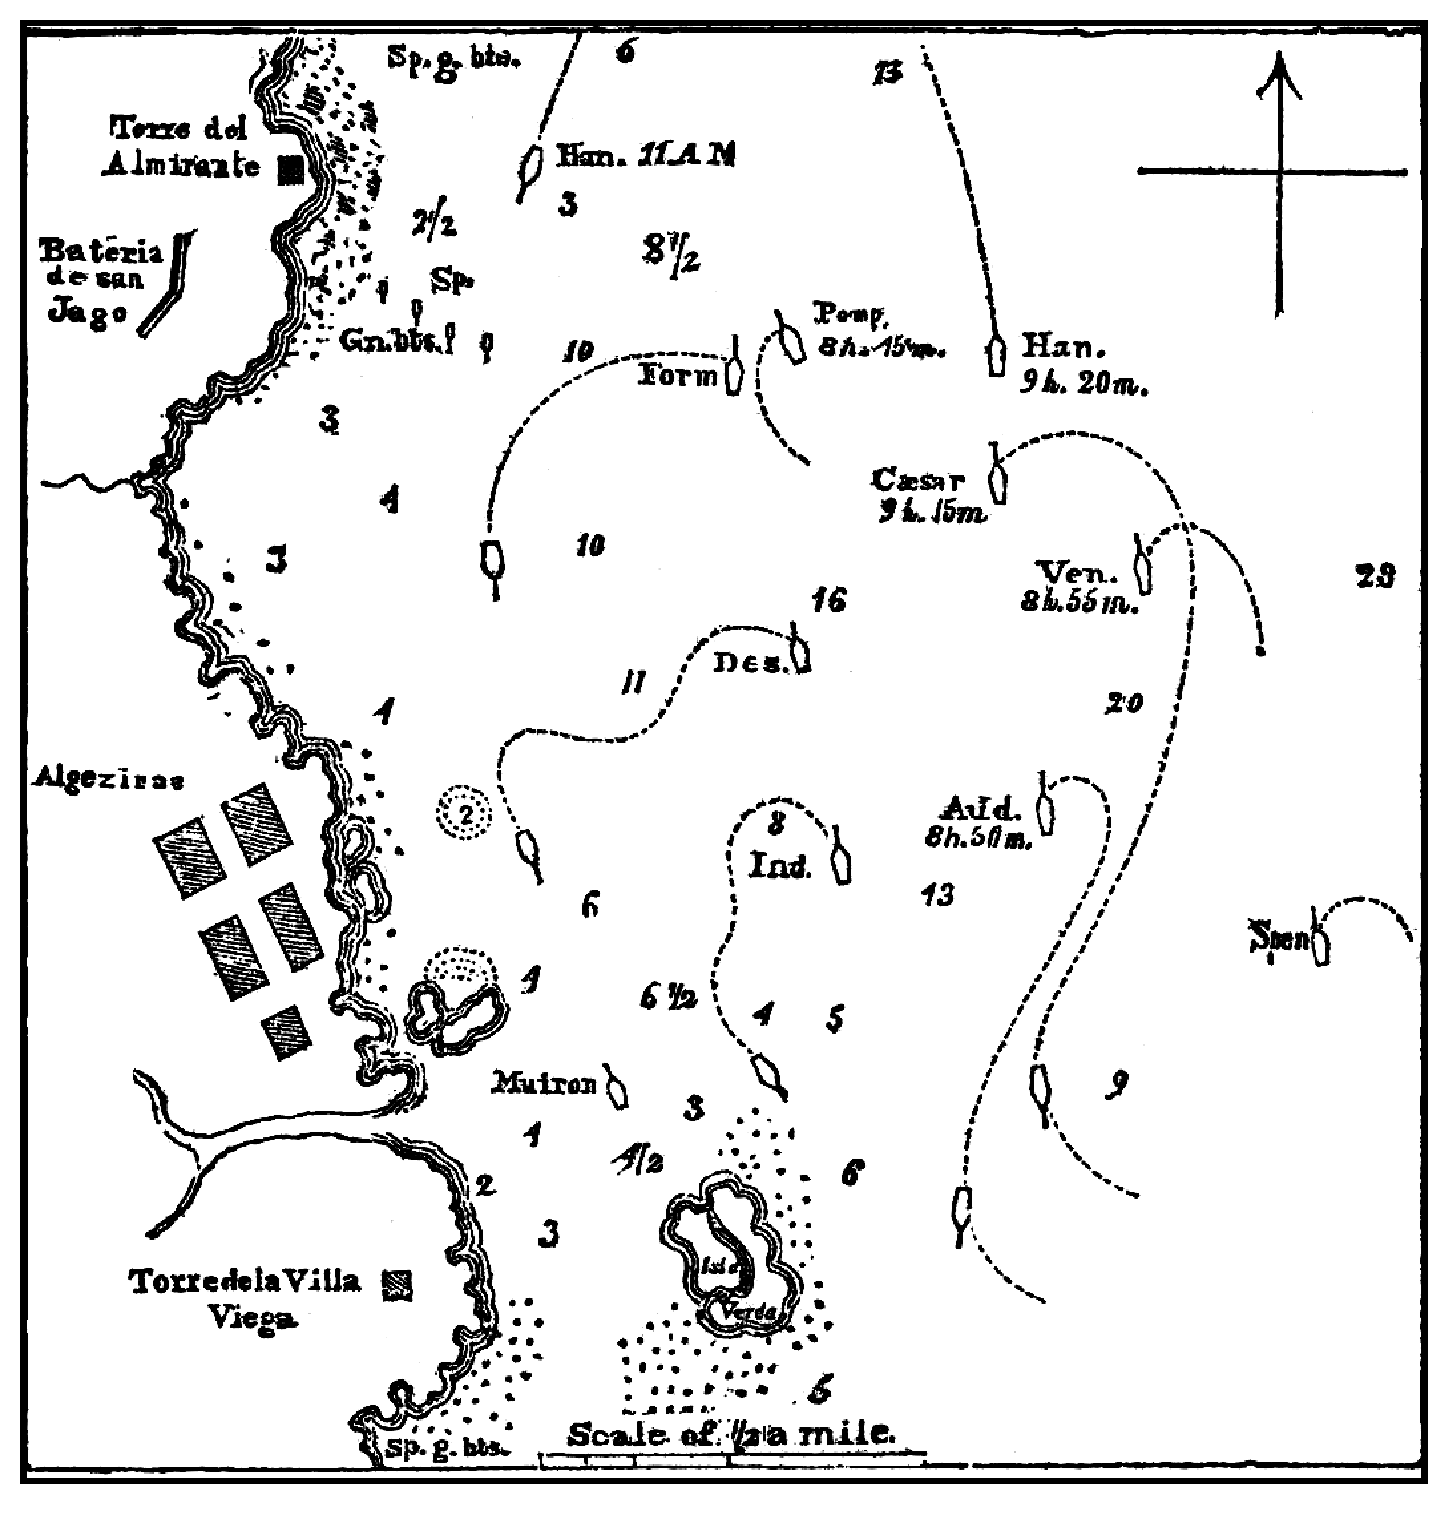 File:First Battle of Algeciras map.png